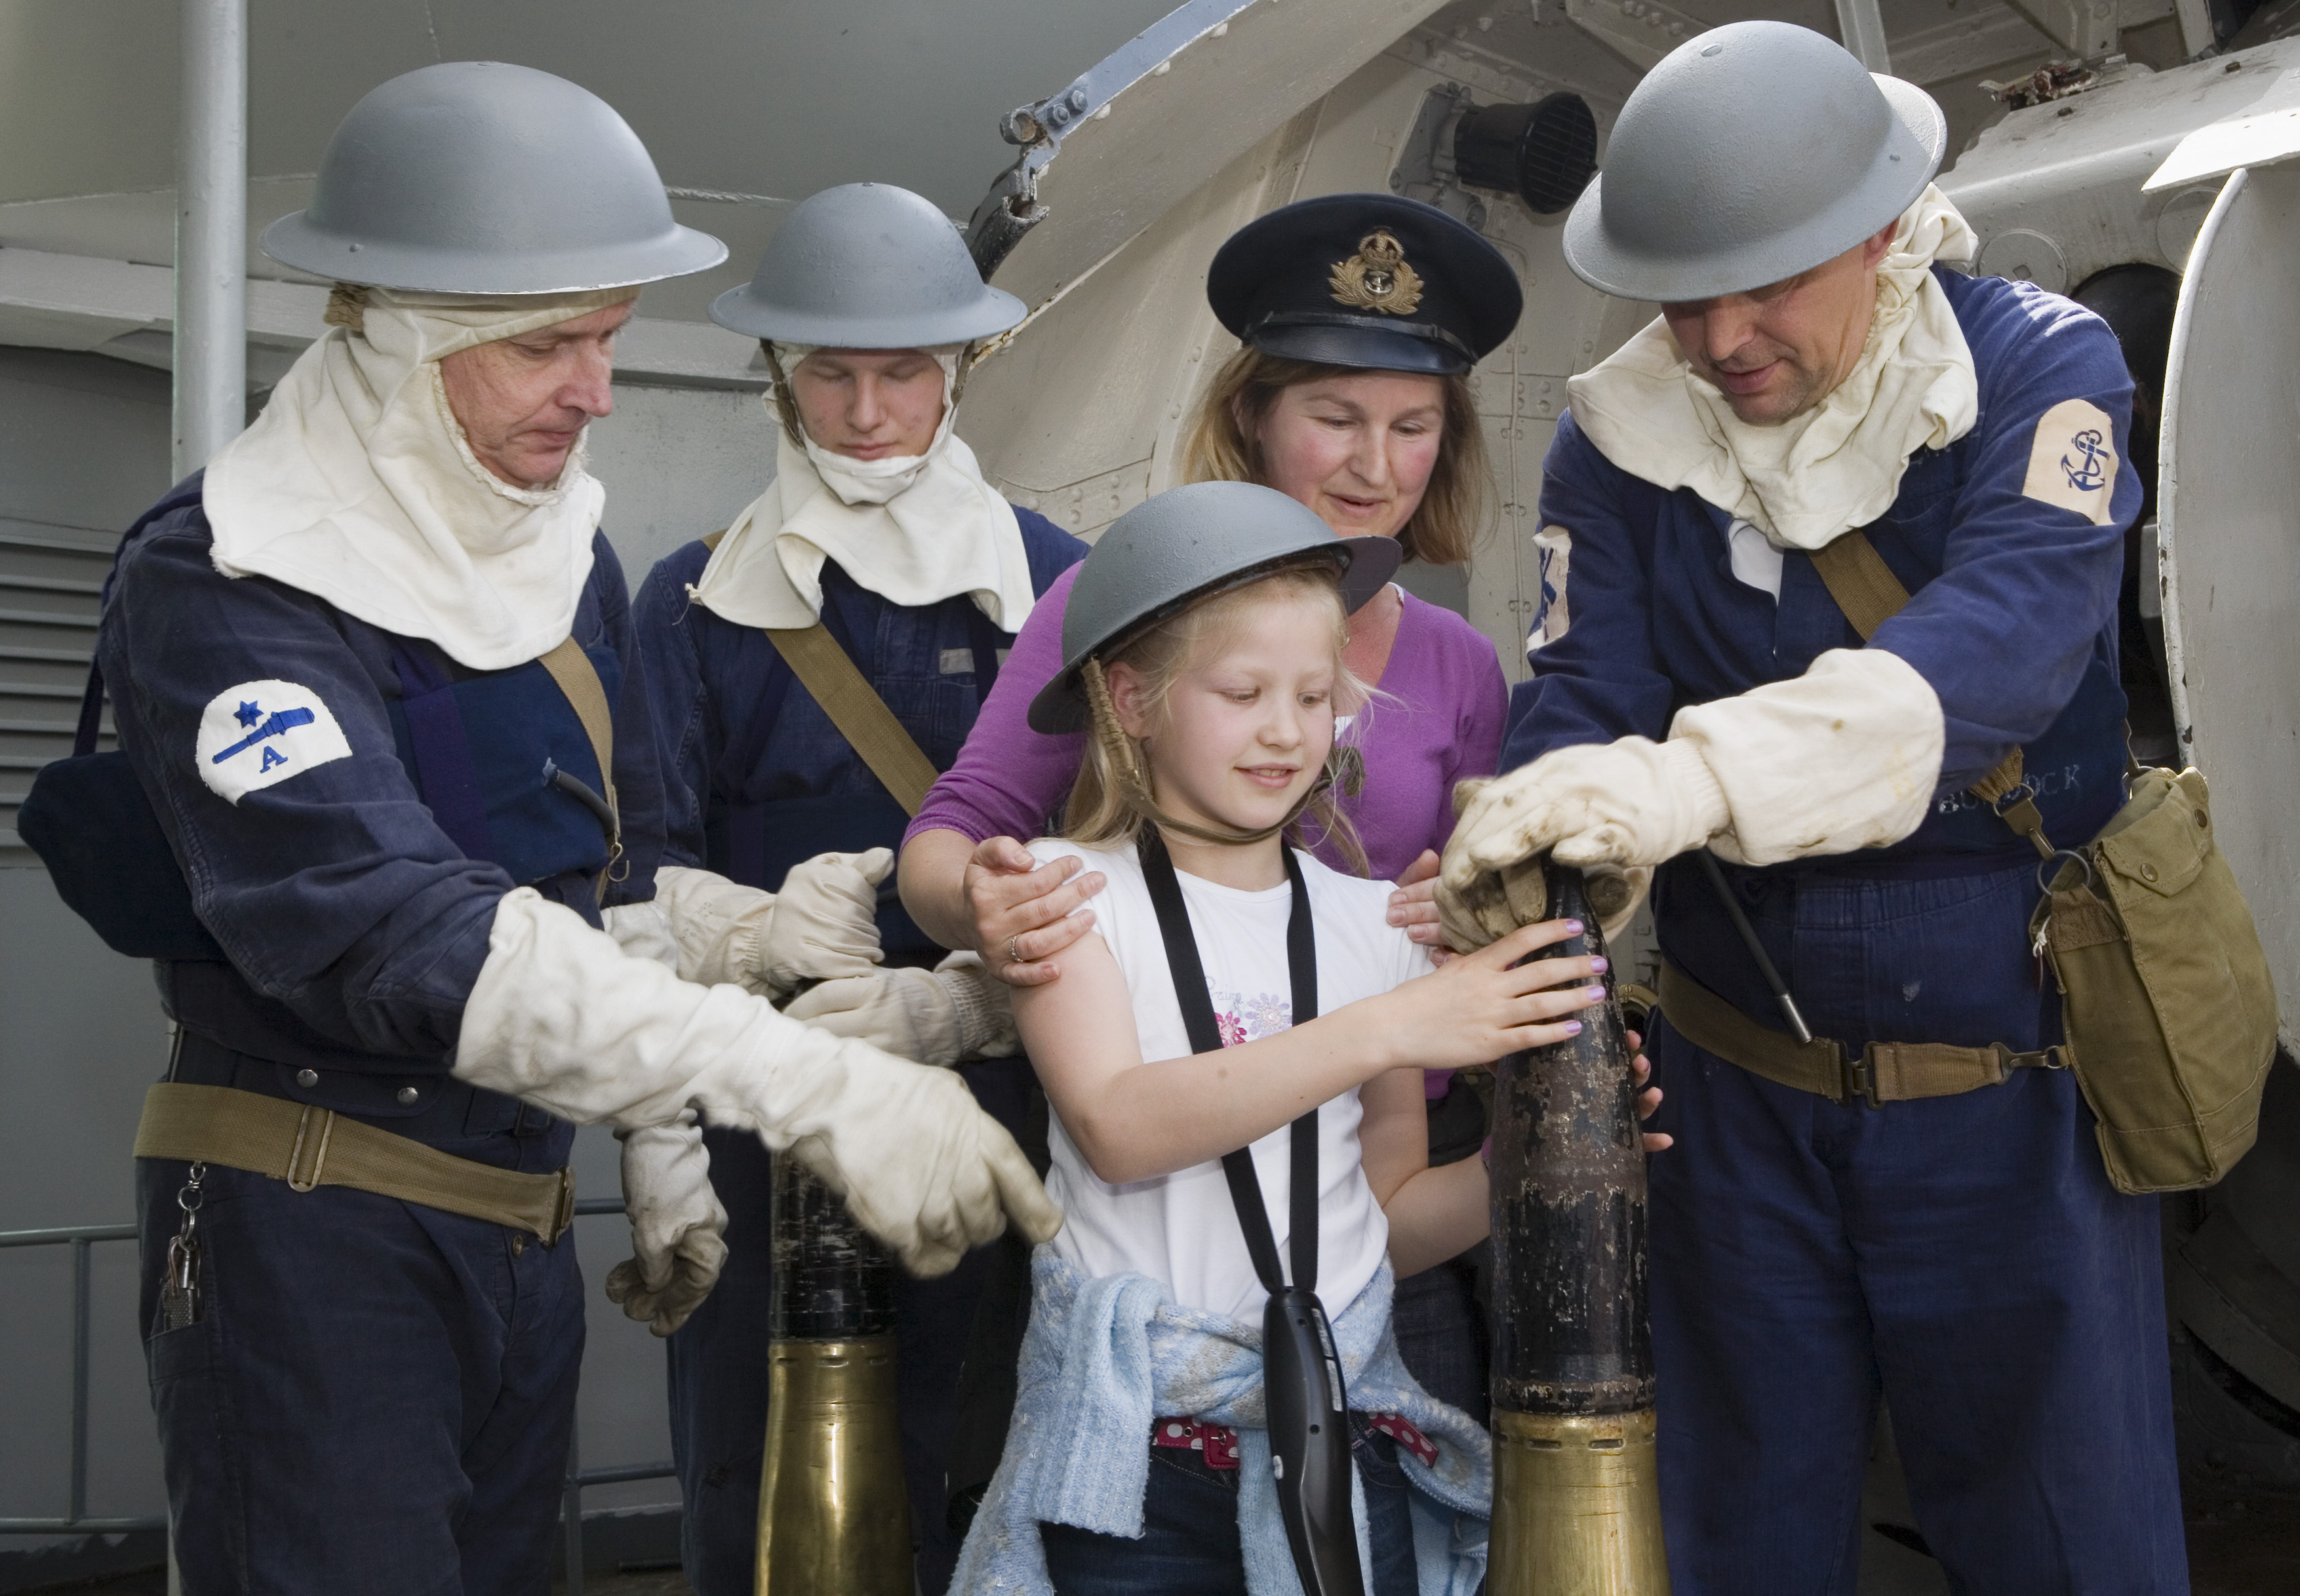 65th Anniversary Of D Day Remembered Onboard HMS Belfast With Dramatic Family Activities